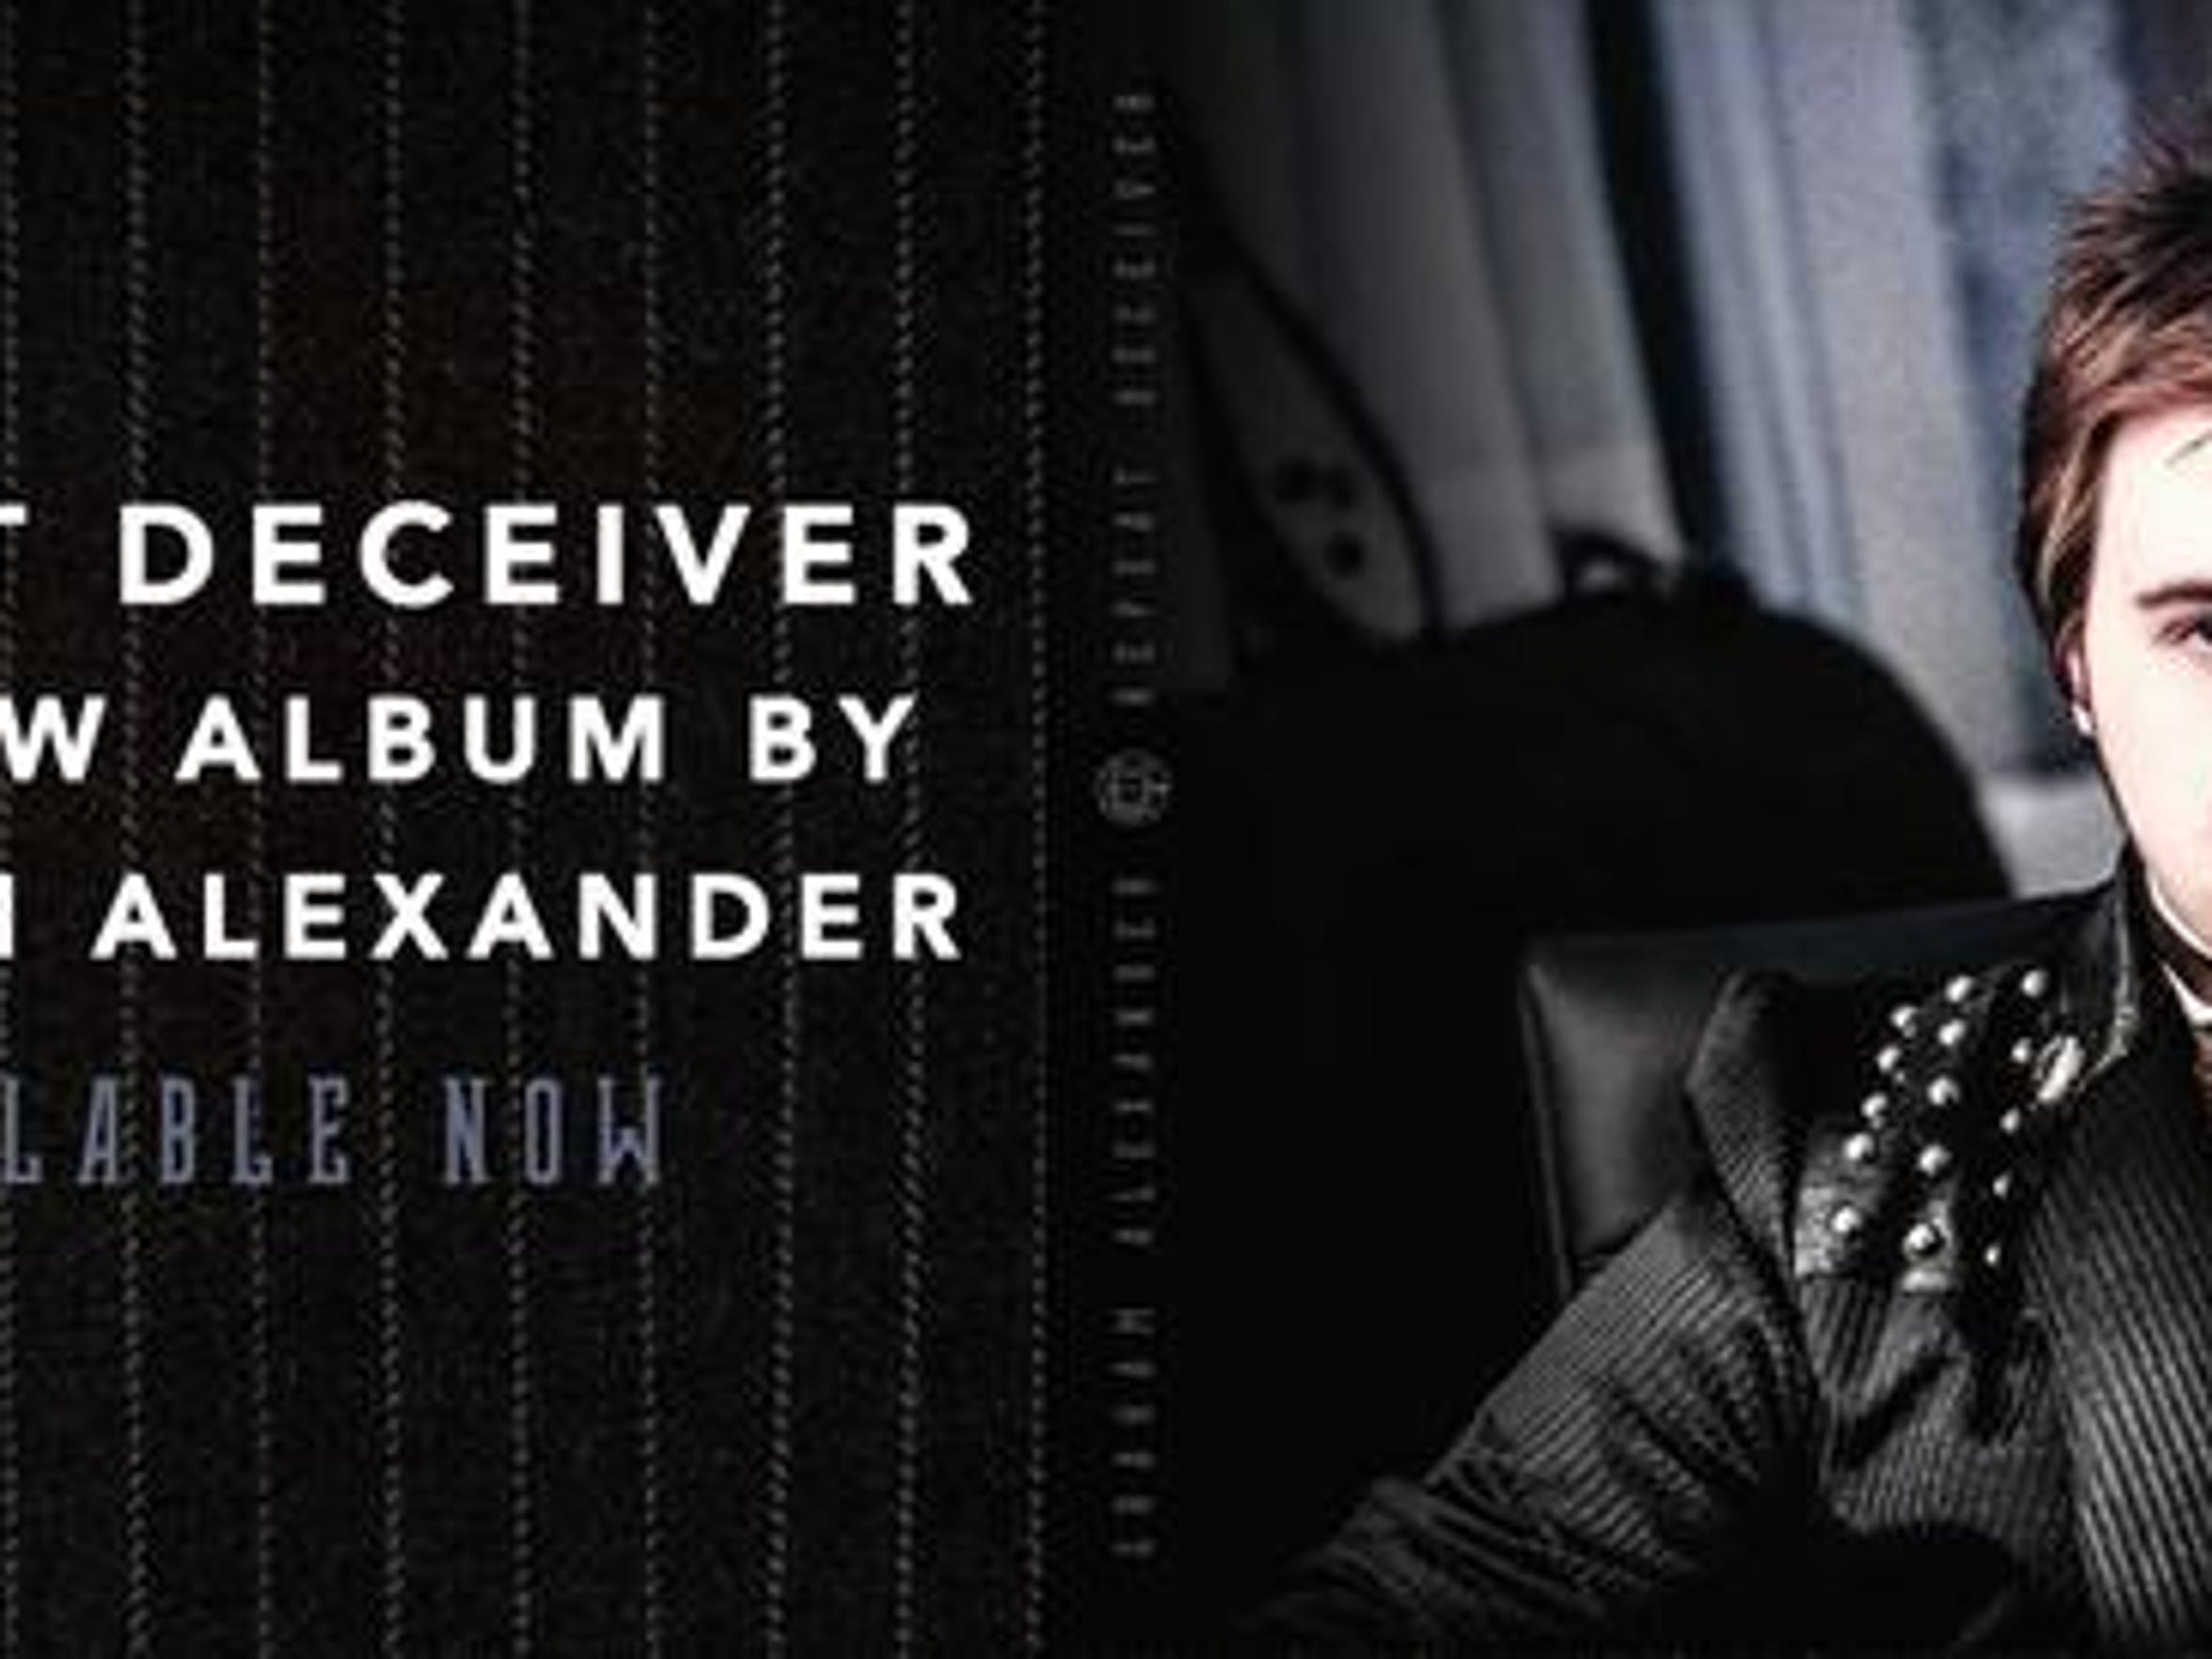 'Rep[eat Deceiver' is a new album by Graham Alexander, the first release off the Victor label since 1945.